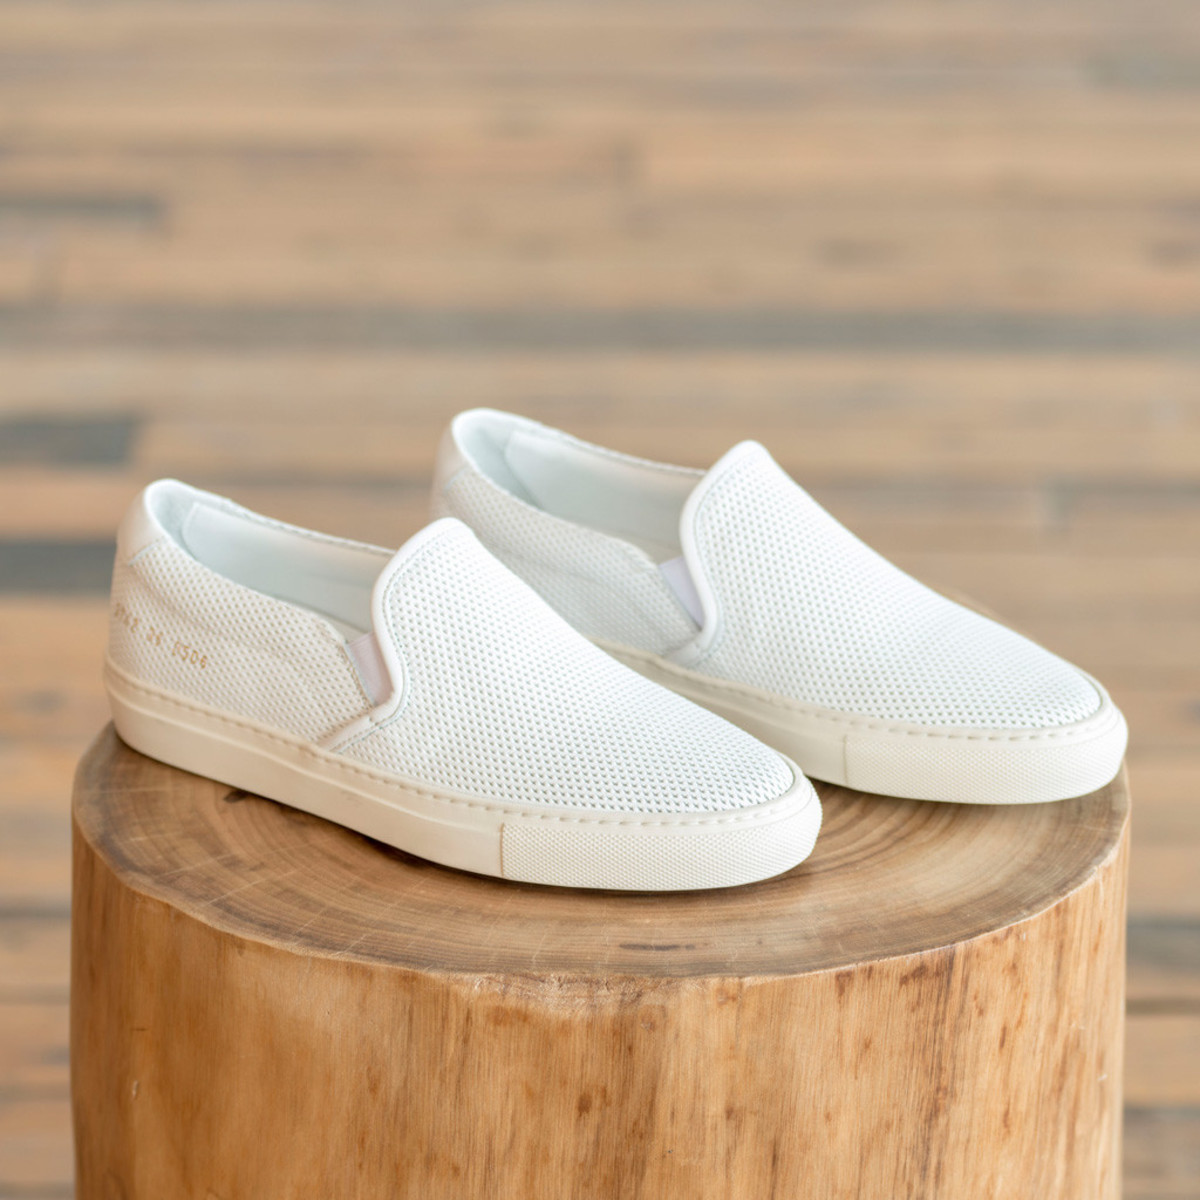 9f81924078f3 Woman by Common Projects Slip on Perforated Leather